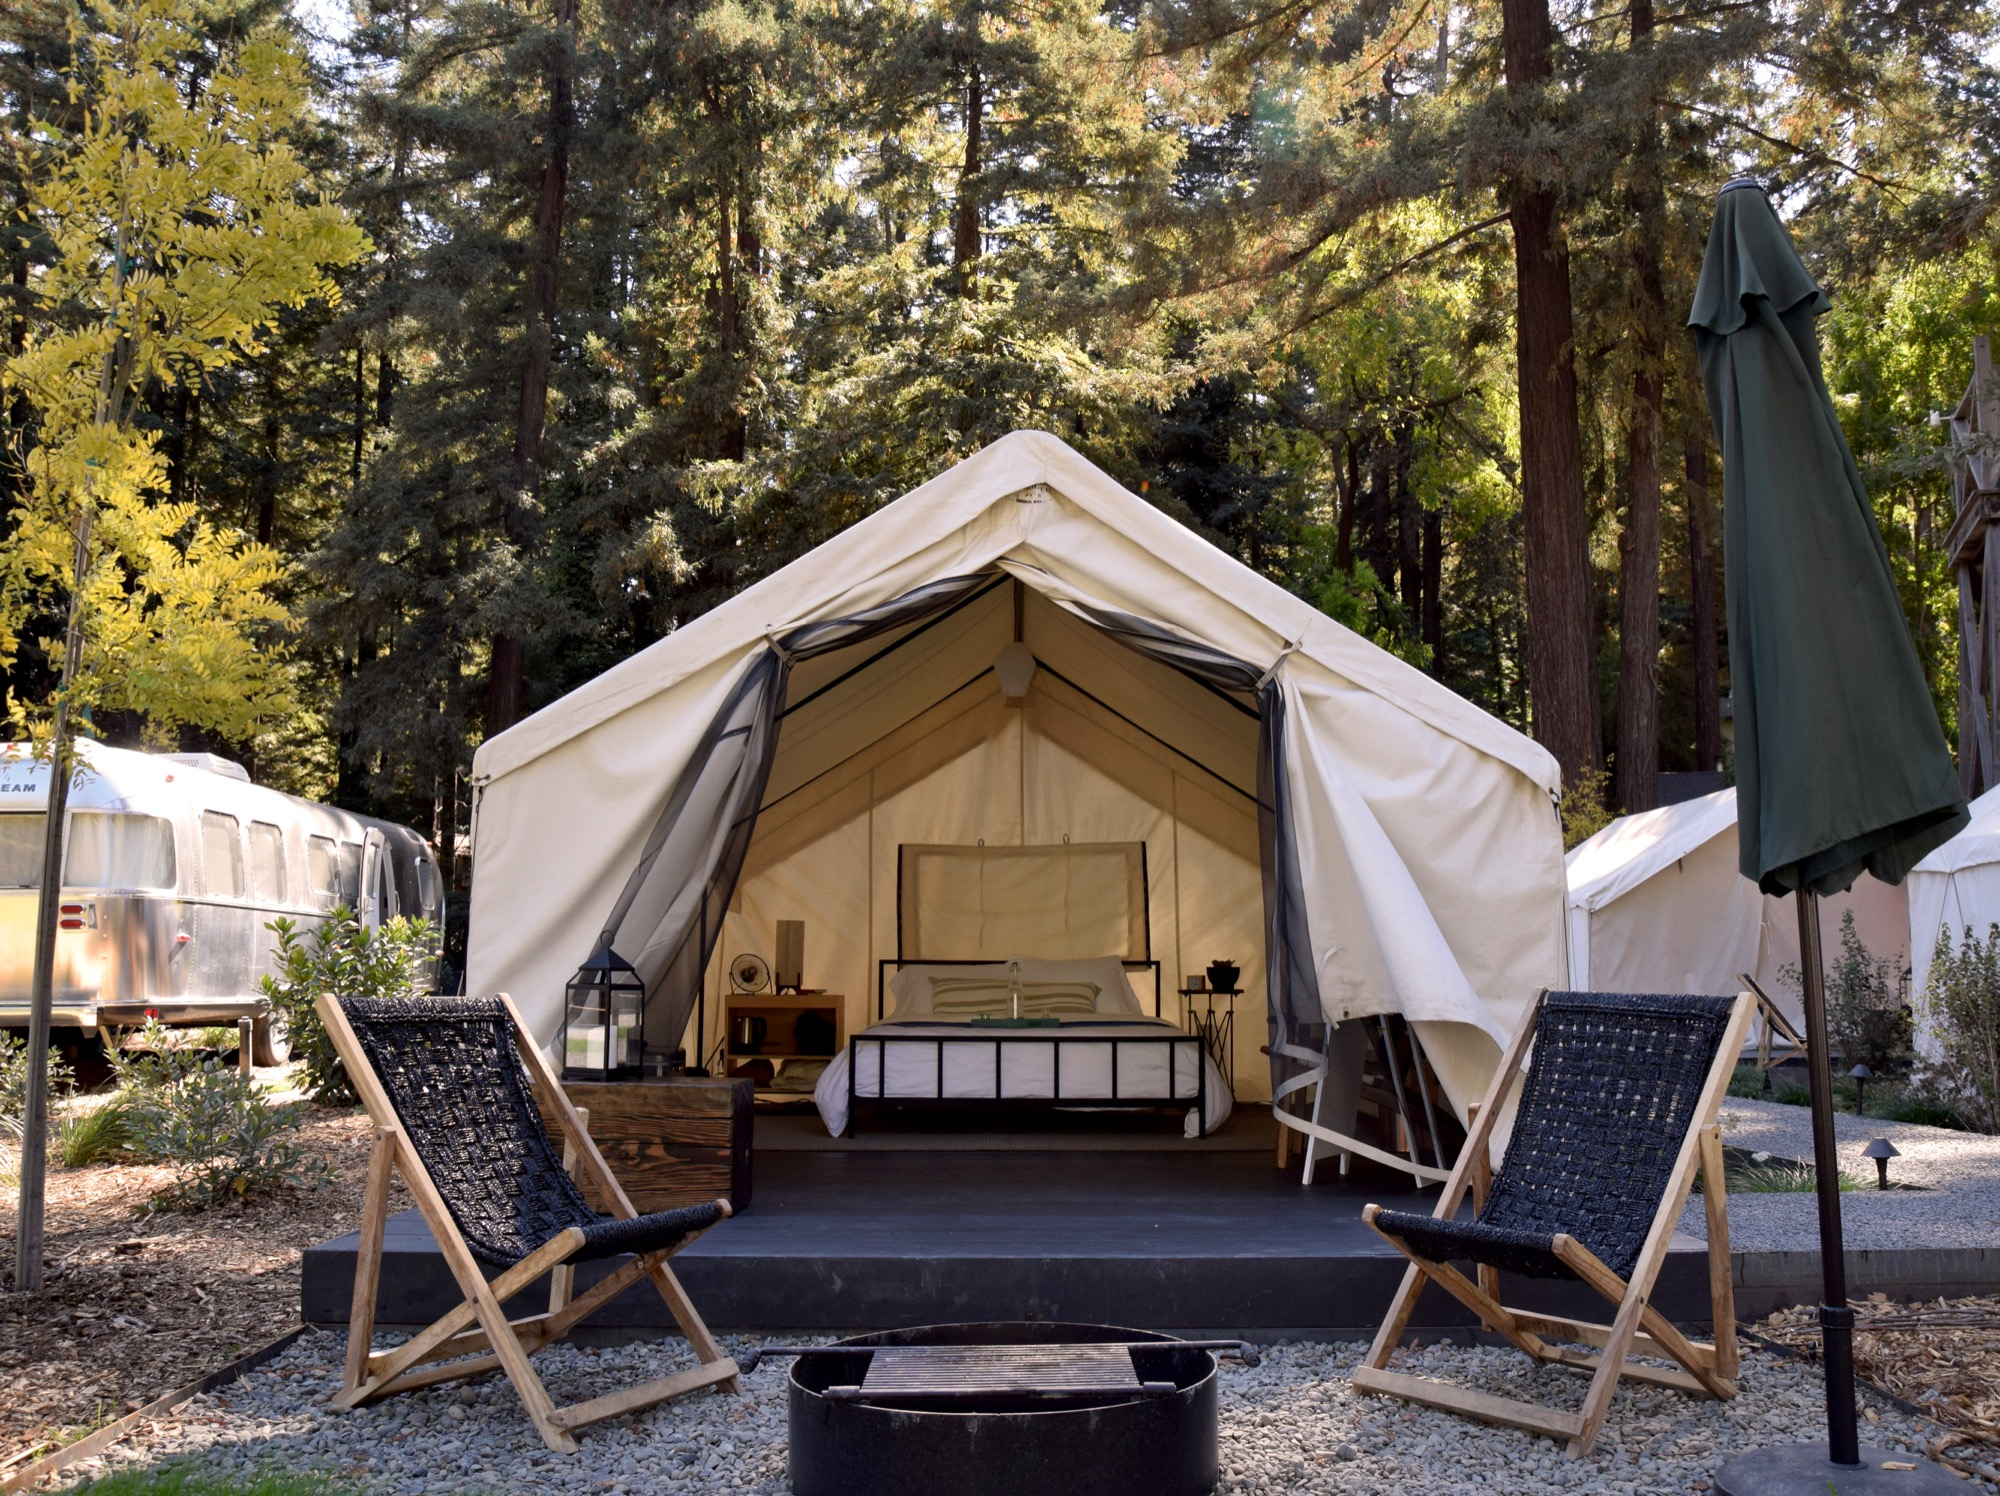 Outside each tent is a patio area outfitted with lounge chairs and a fire pit. At night, an electric blanket keeps things toasty / Photo by Emma Geiszler